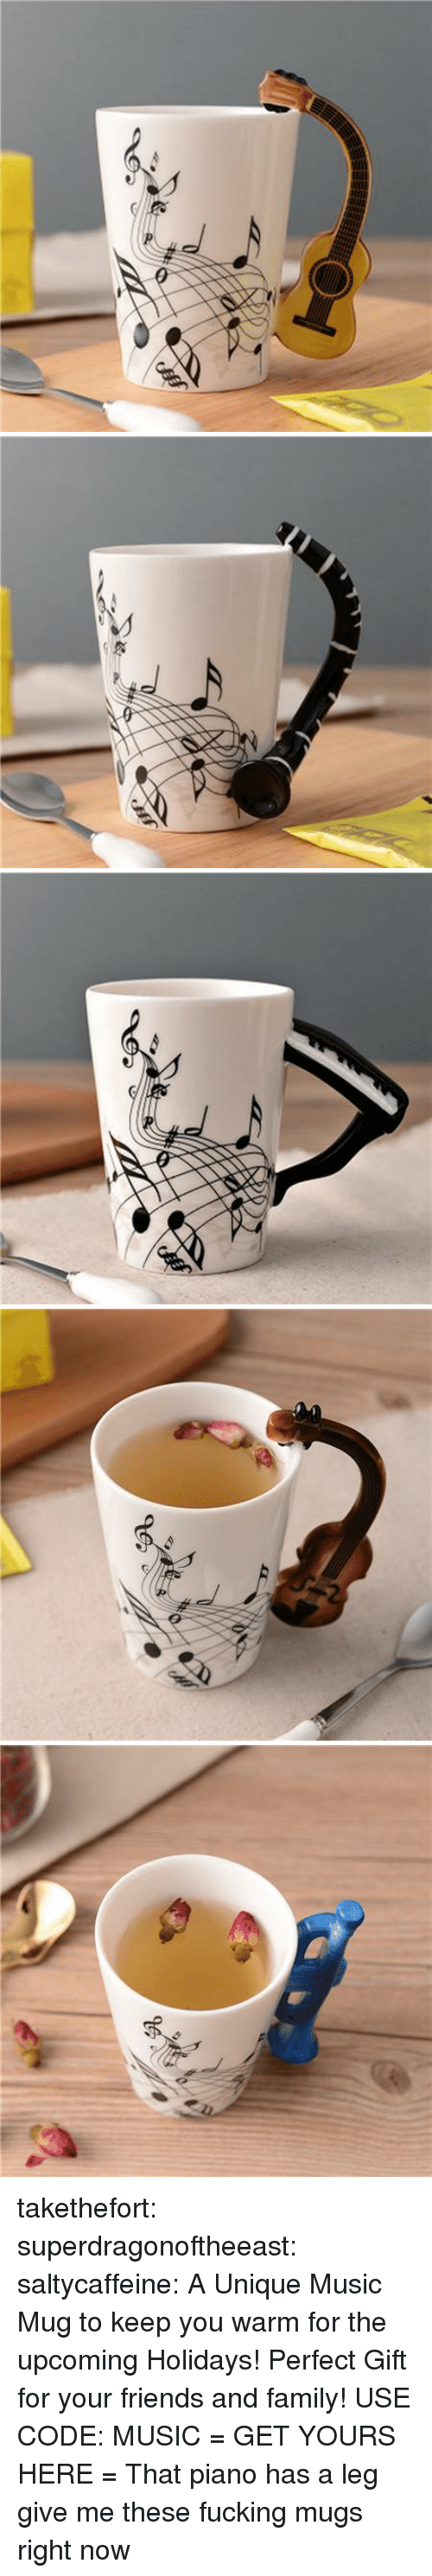 Family, Friends, and Fucking: takethefort: superdragonoftheeast:  saltycaffeine:  A Unique Music Mug to keep you warm for the upcoming Holidays! Perfect Gift for your friends and family! USE CODE: MUSIC = GET YOURS HERE =   That piano has a leg   give me these fucking mugs right now